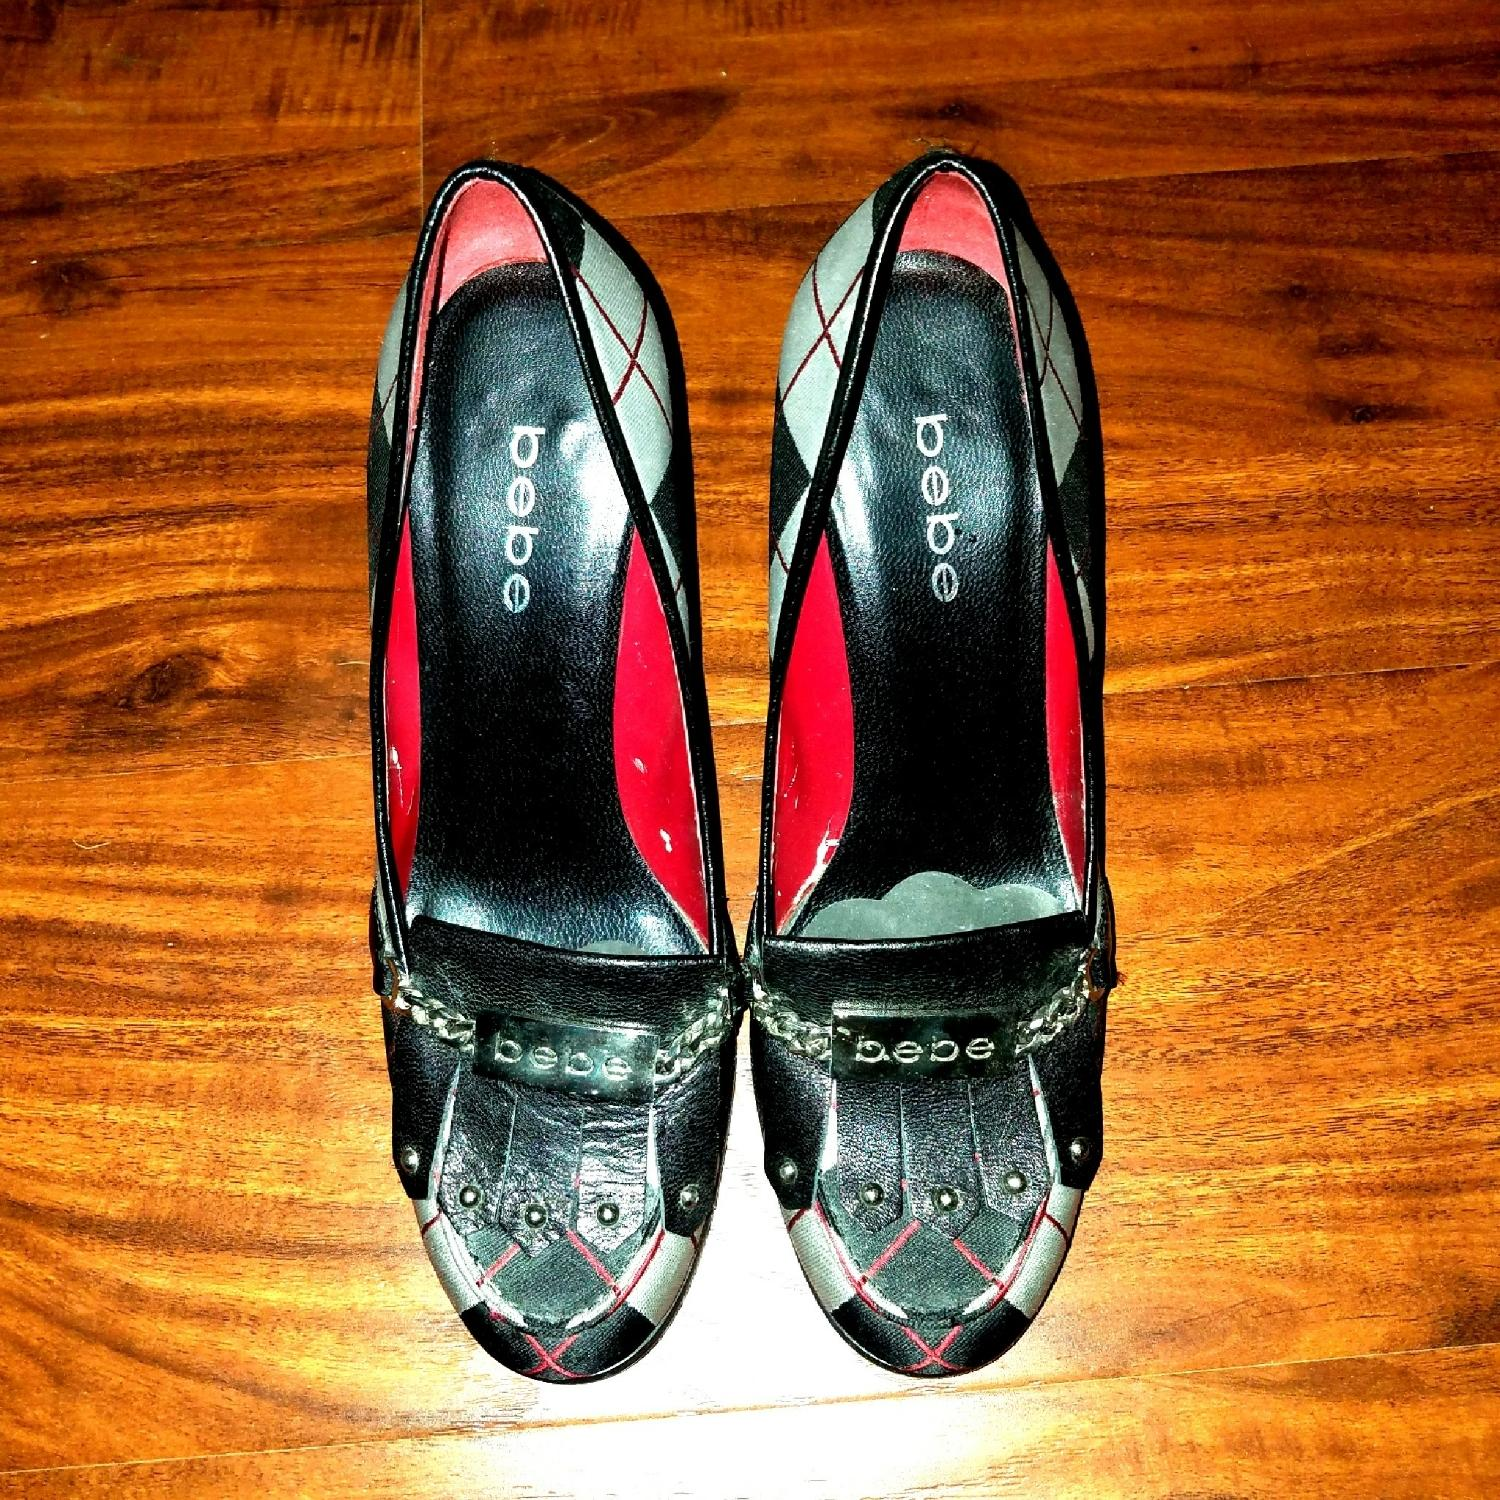 Christian Louboutin Loafers Bebé